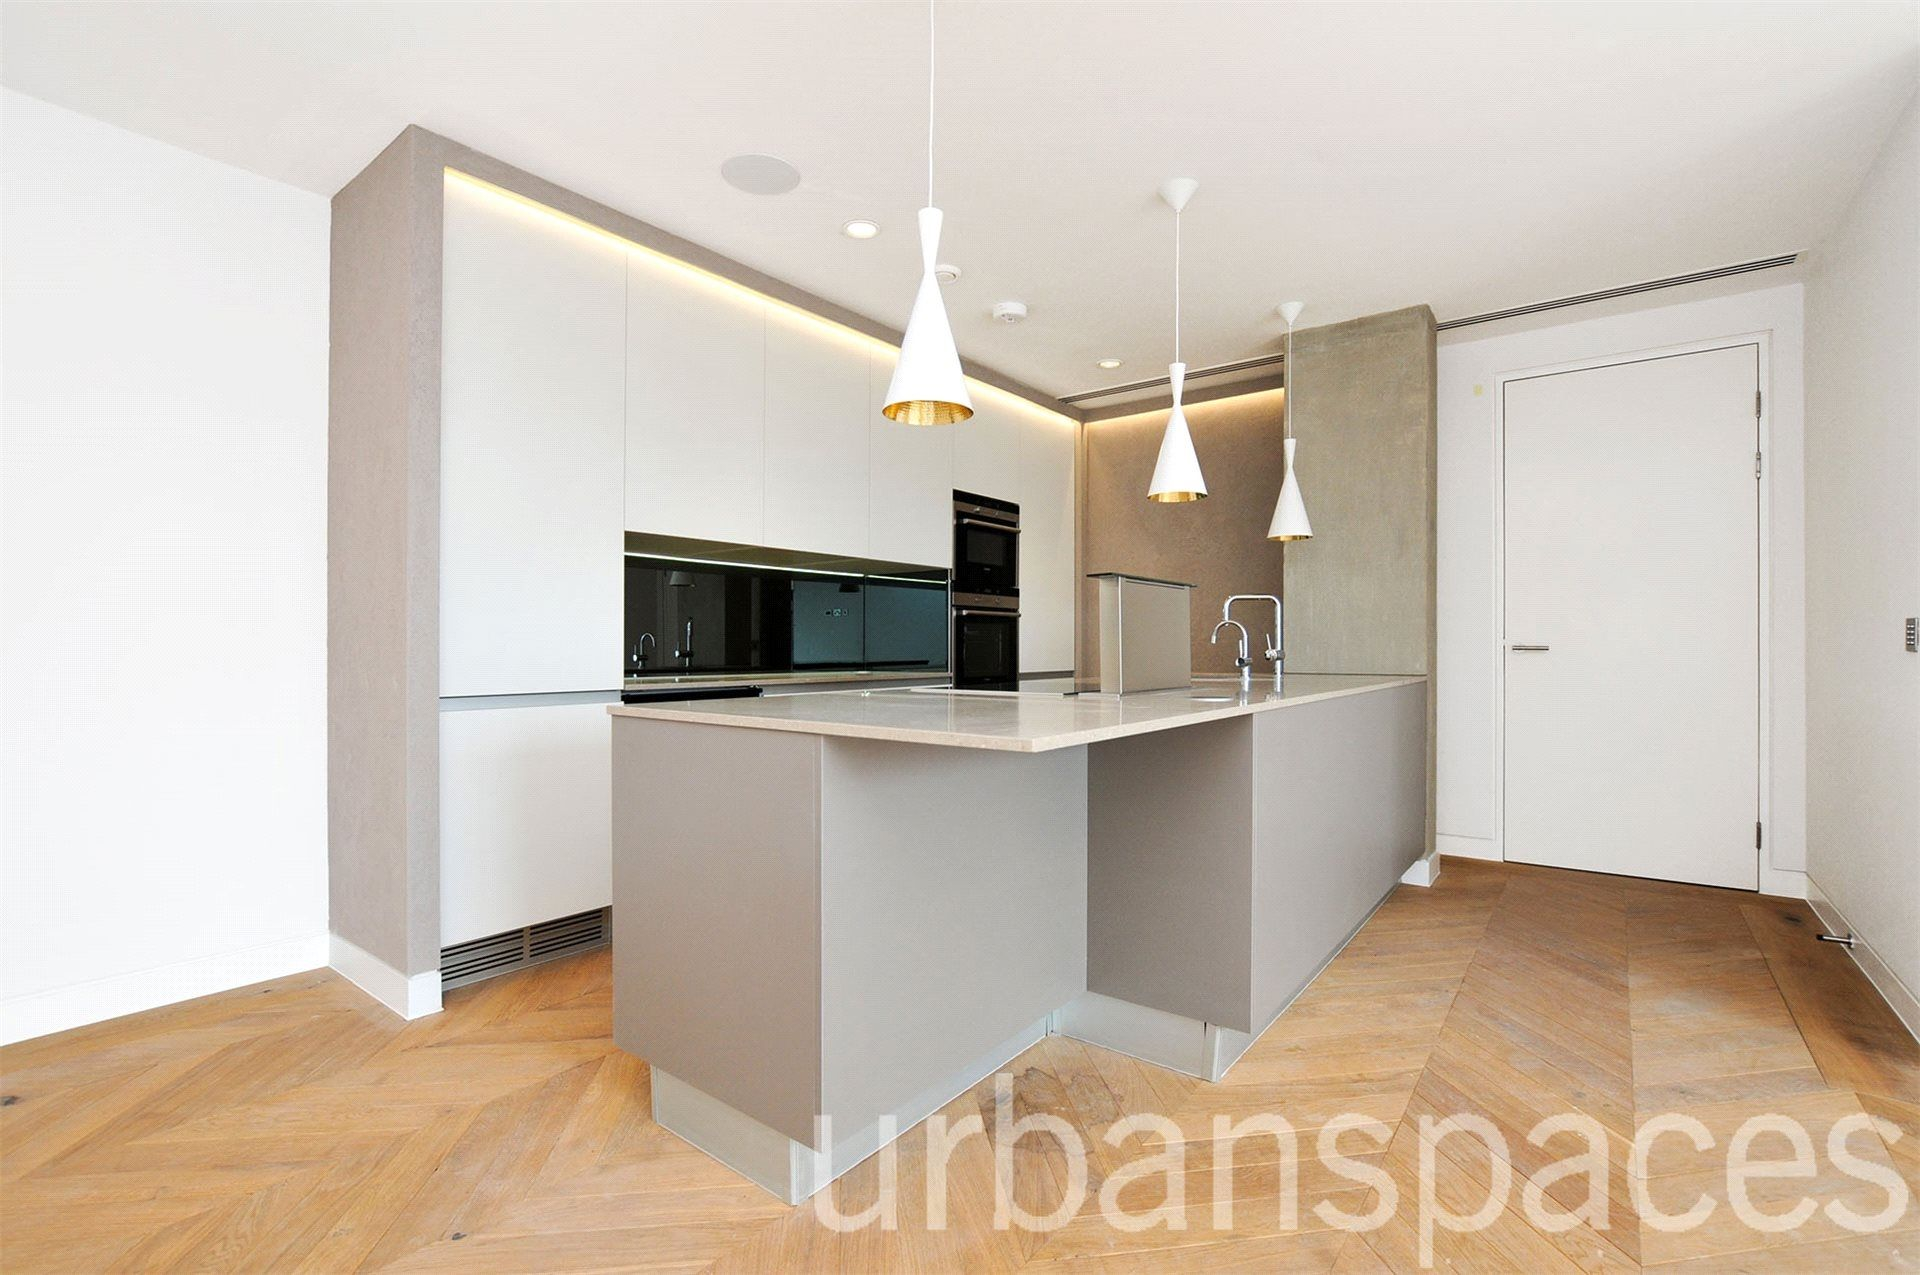 2 bedroom  Flat to rent in London EC2A